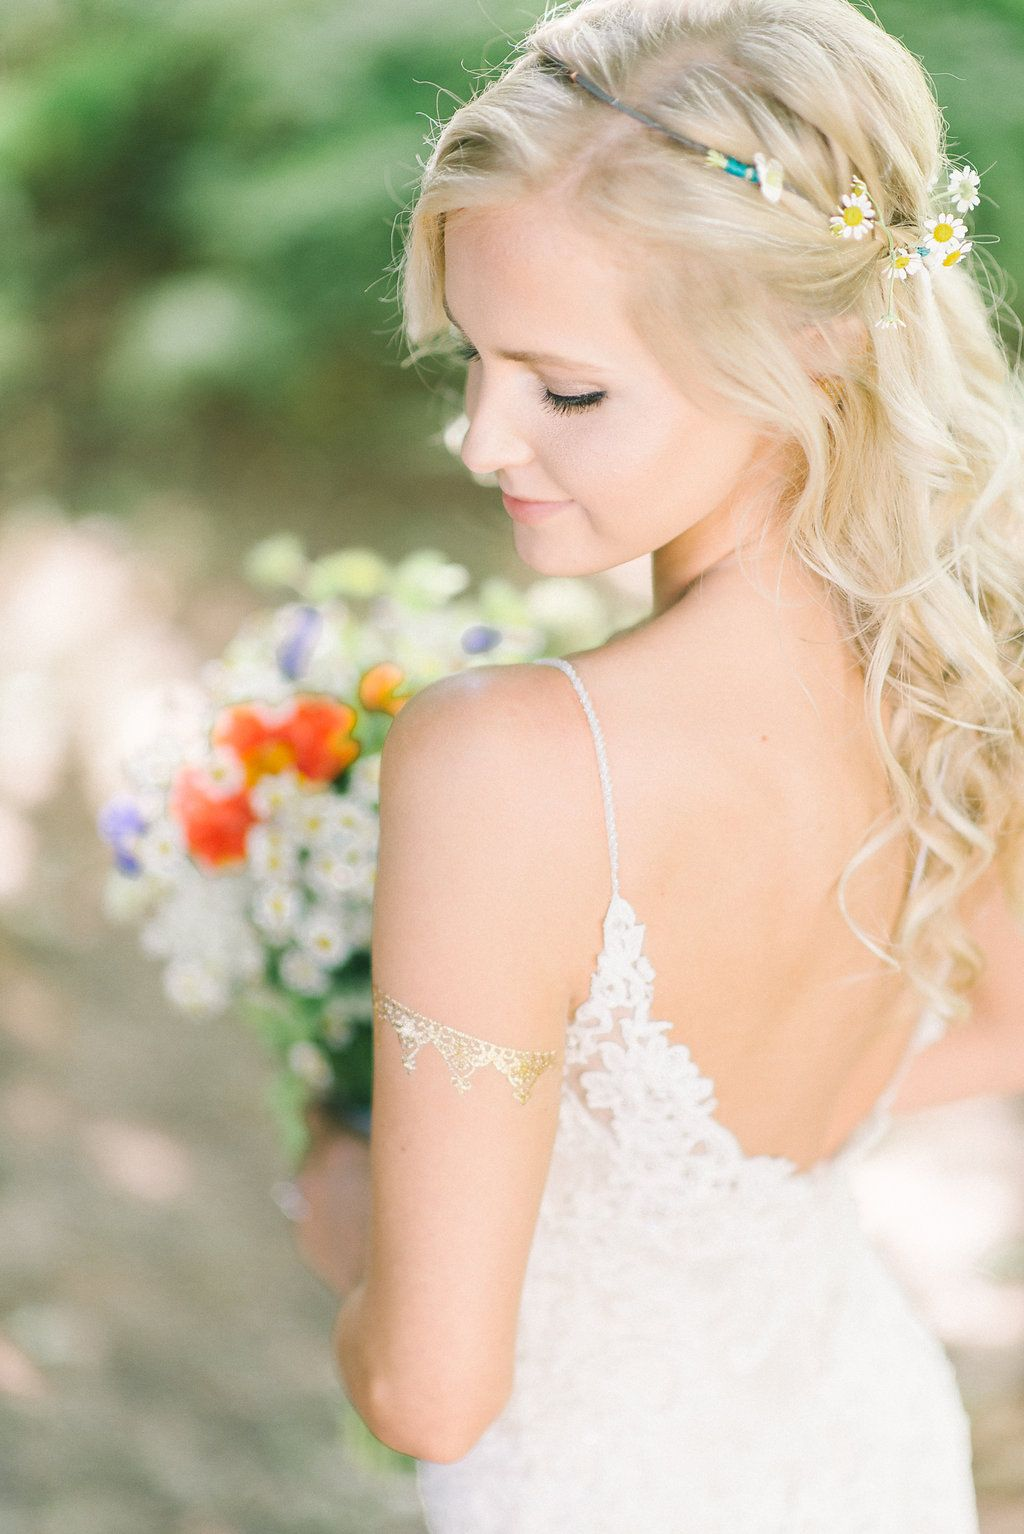 Love Was In The Air At This Dreamy Bohemian Chic Outdoor Wedding Bridal Photography Poses Bridal Portrait Poses Bridal Poses